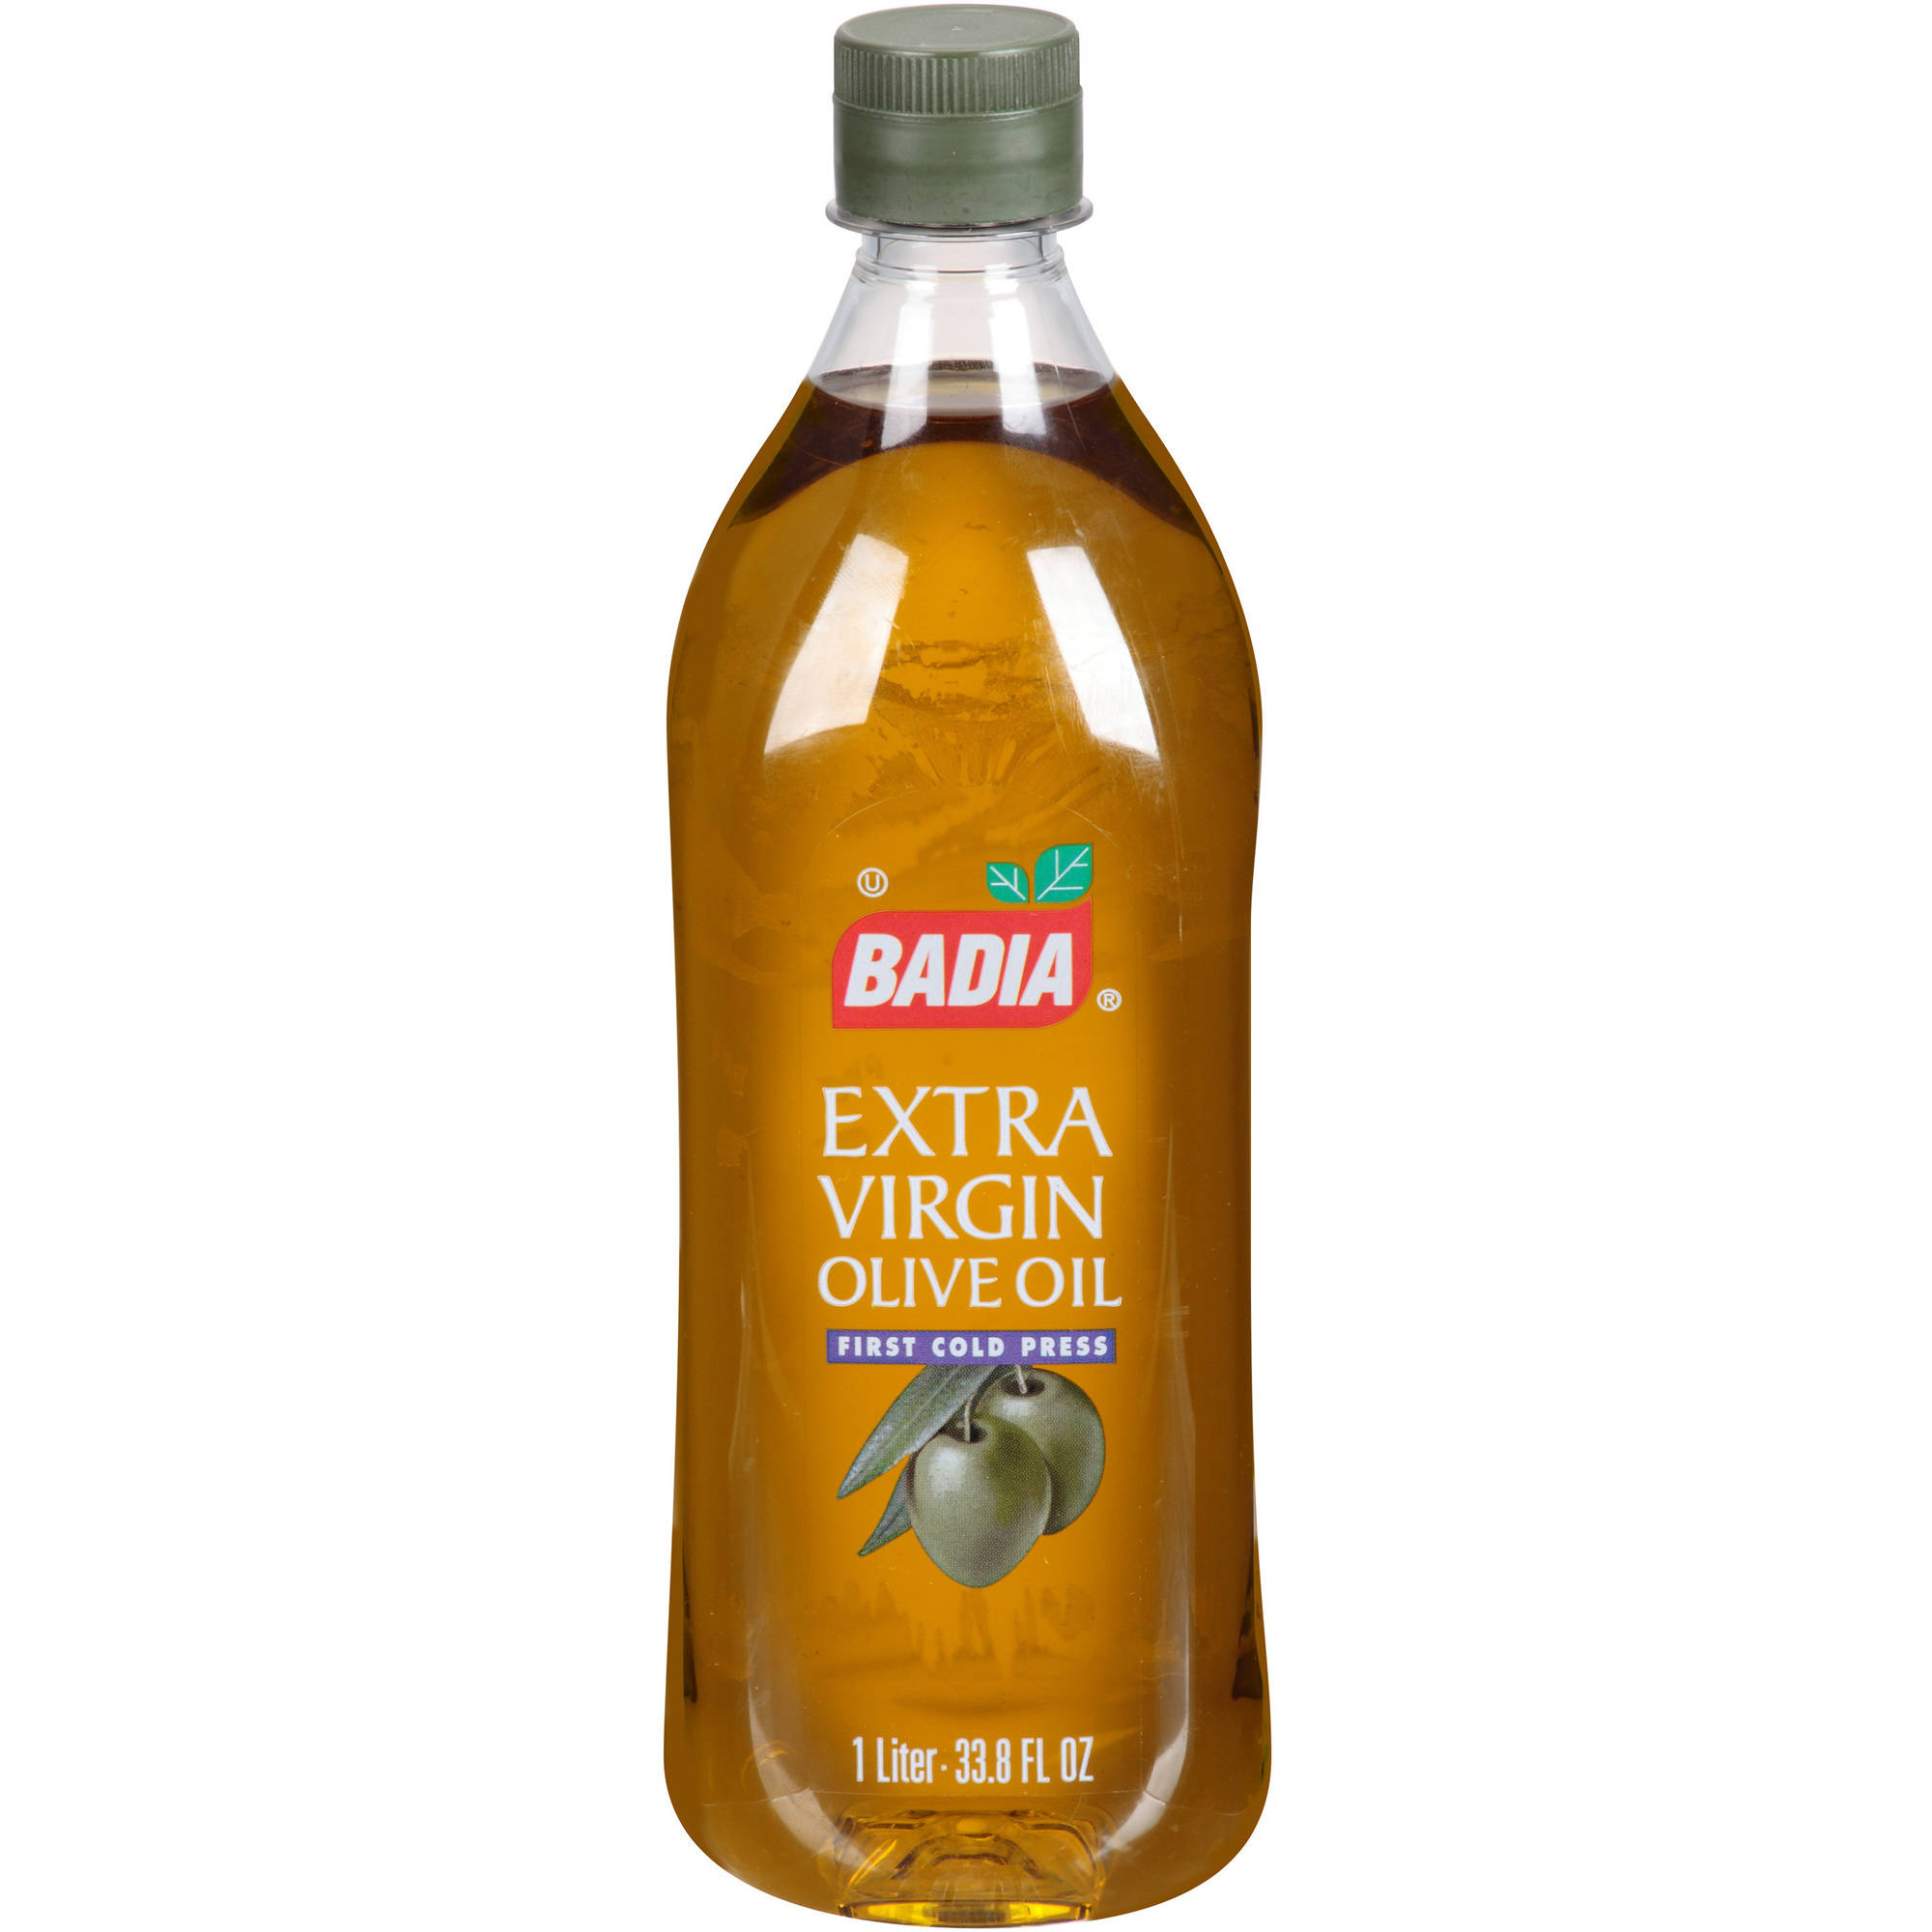 Badia Extra Virgin Olive Oil, 33.8 fl oz by Badia Spices